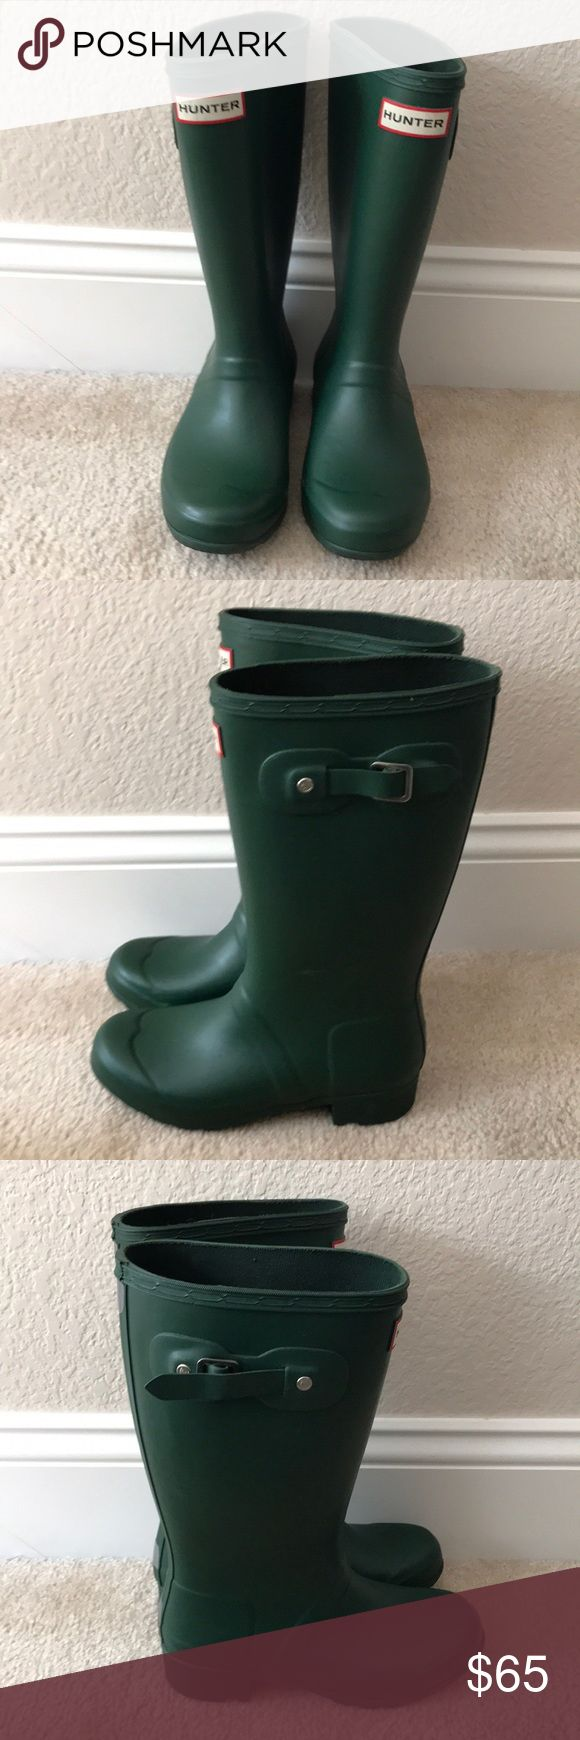 FOREST GREEN HUNTER BOOTS💚 Kids size 3 super cute and comfy galoshes. Bought at the end of winter, worn 2 times. Sadly my foot grew over summer and they no longer fit. In almost new condition, fits a women's        5/5.5💖bundle to save, make an offer😊 Hunter Boots Shoes Winter & Rain Boots